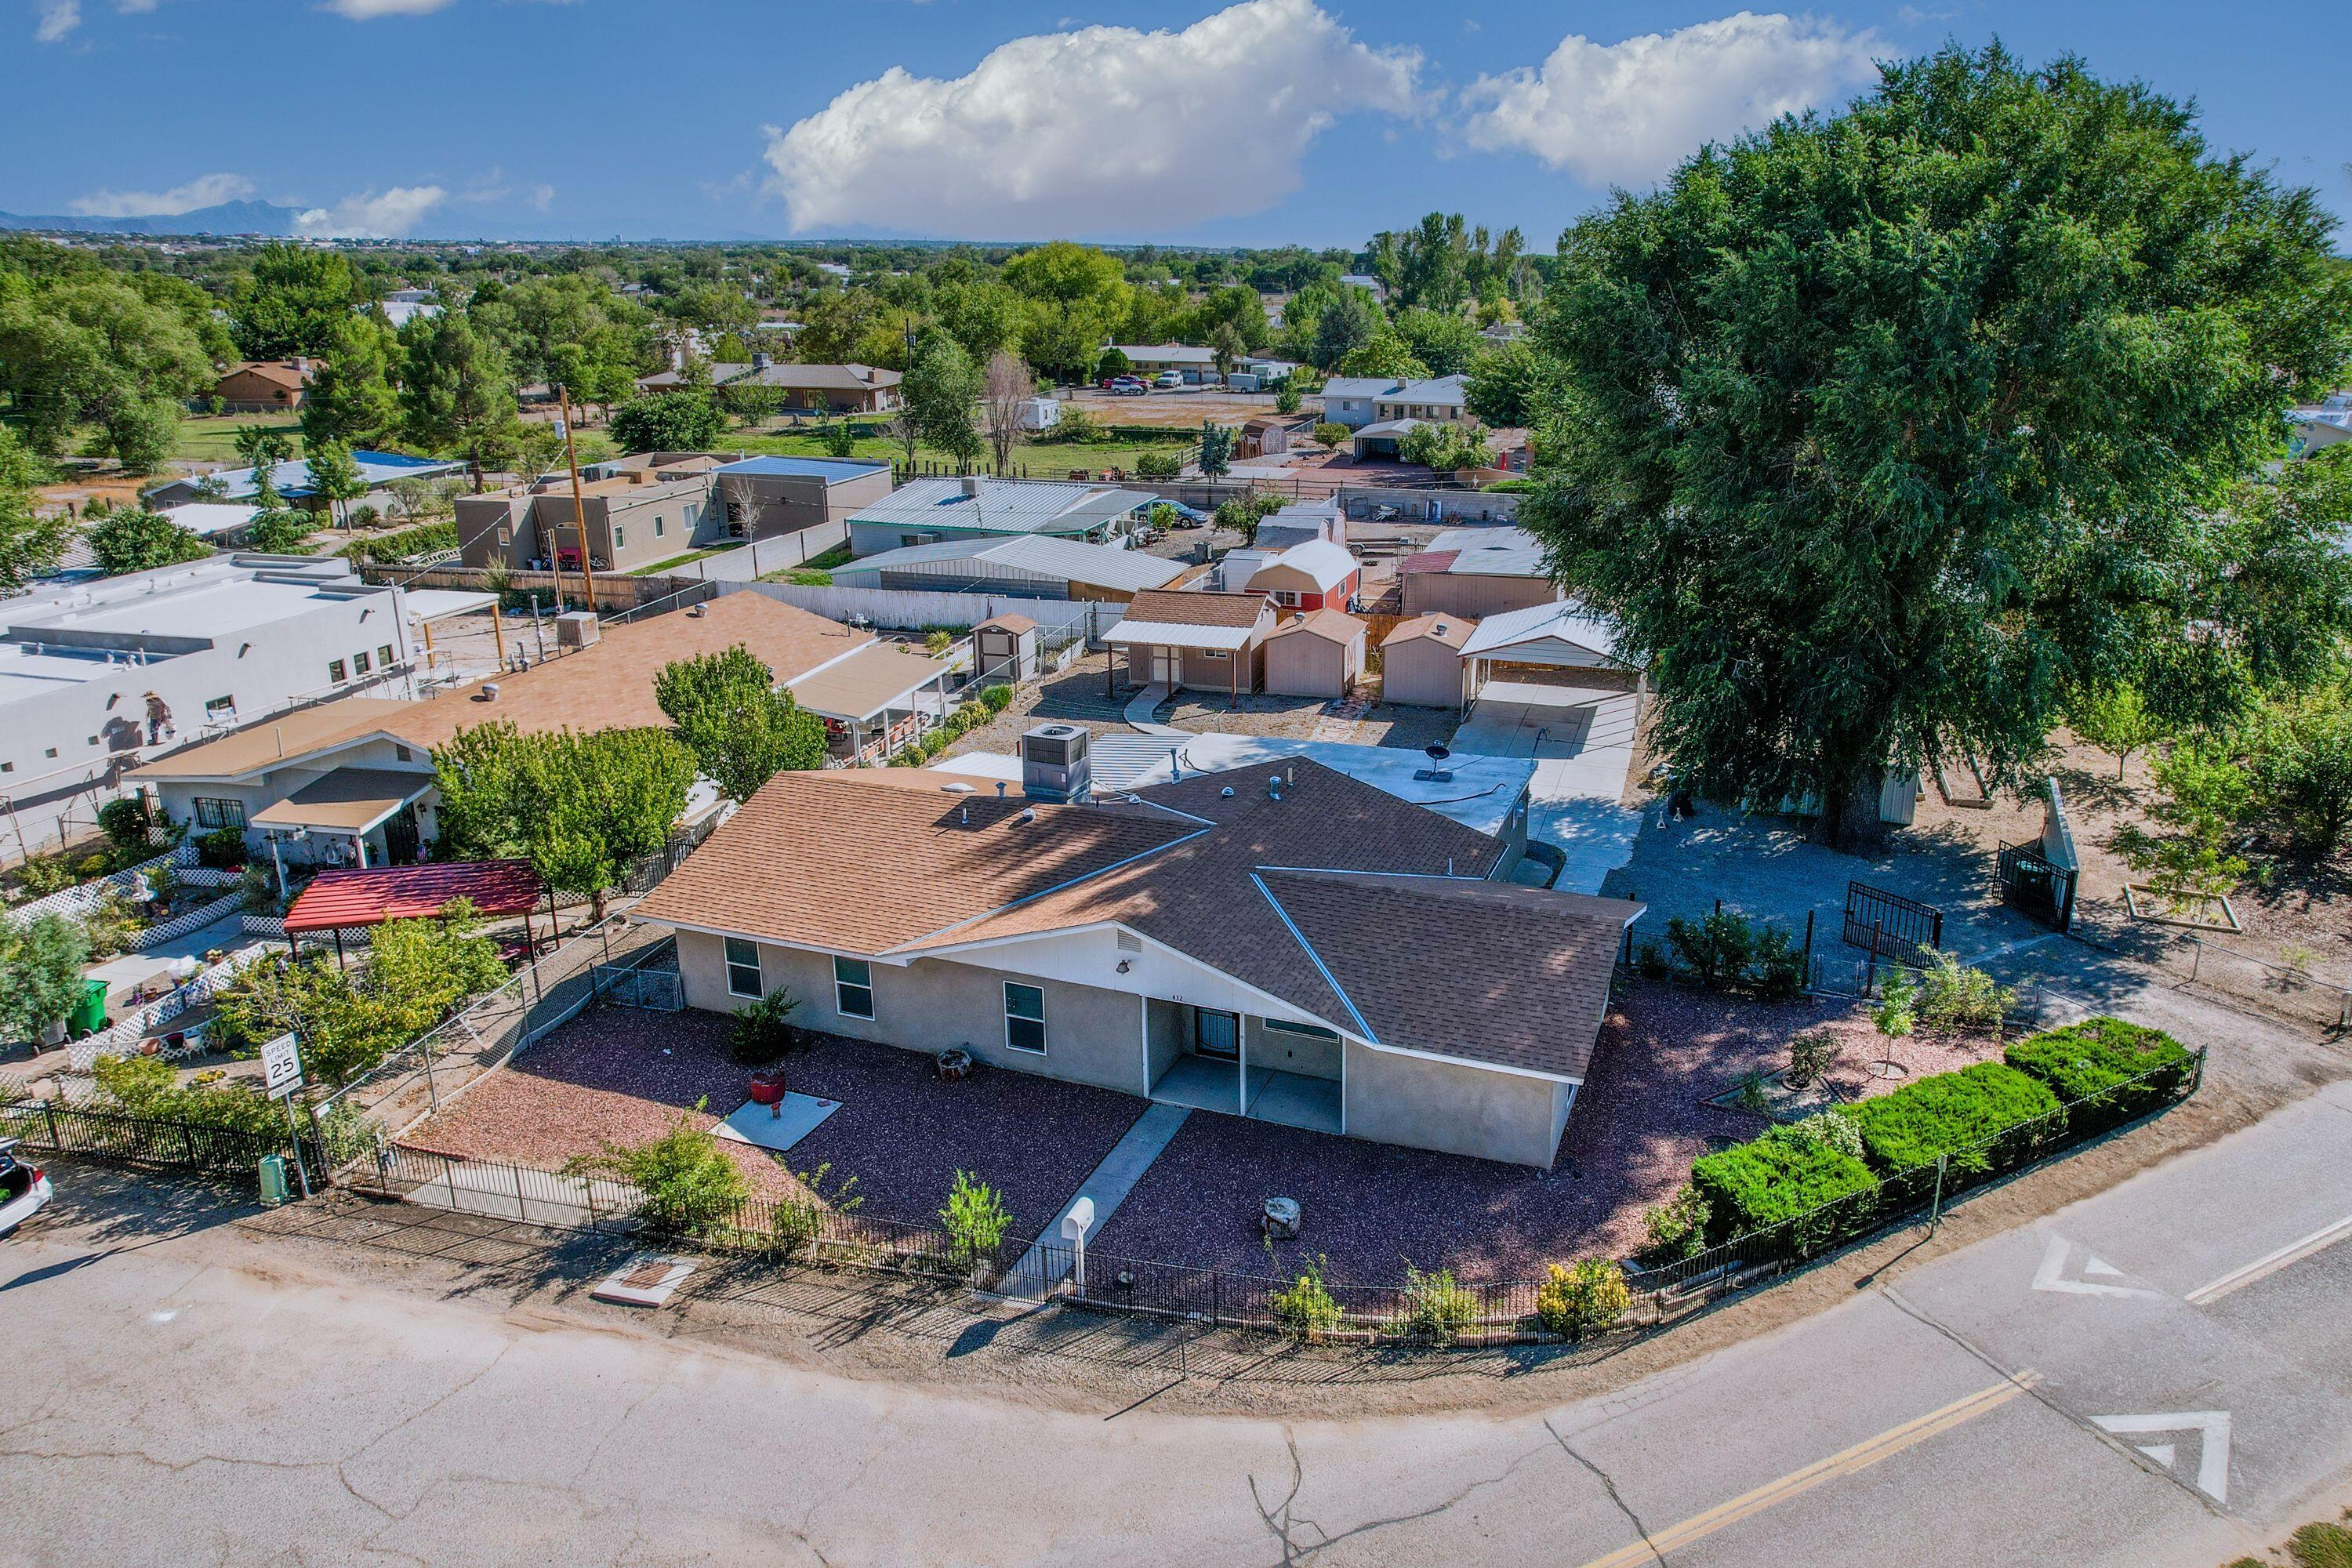 .45 acre lot in the North Valley!  Workshop and 2 additional storage units. Plenty of space with 4 bedrooms and 2 full baths.  Huge garden with fruit trees and an irrigation well.  Backyard entrance with a large carport!